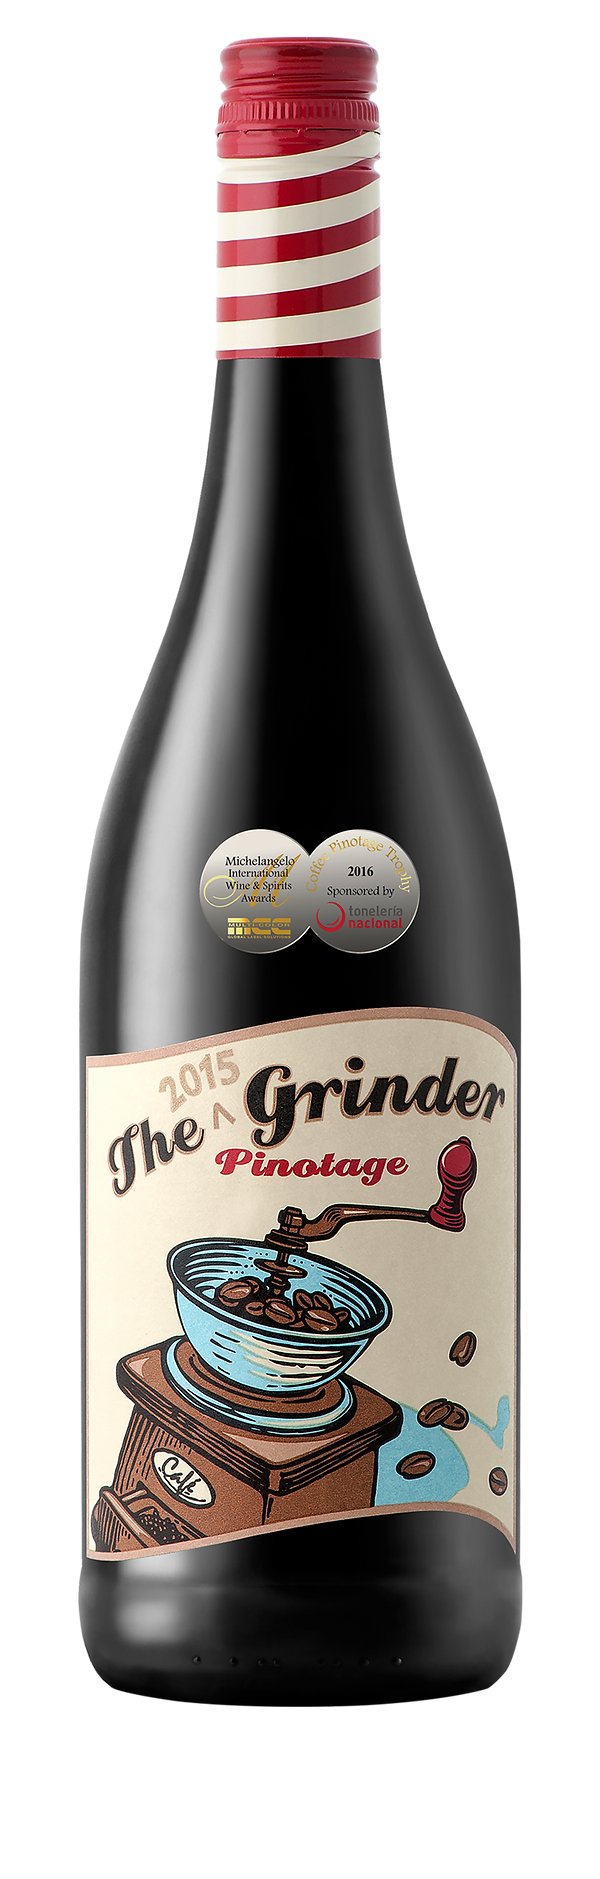 The Grape Grinder Pinotage